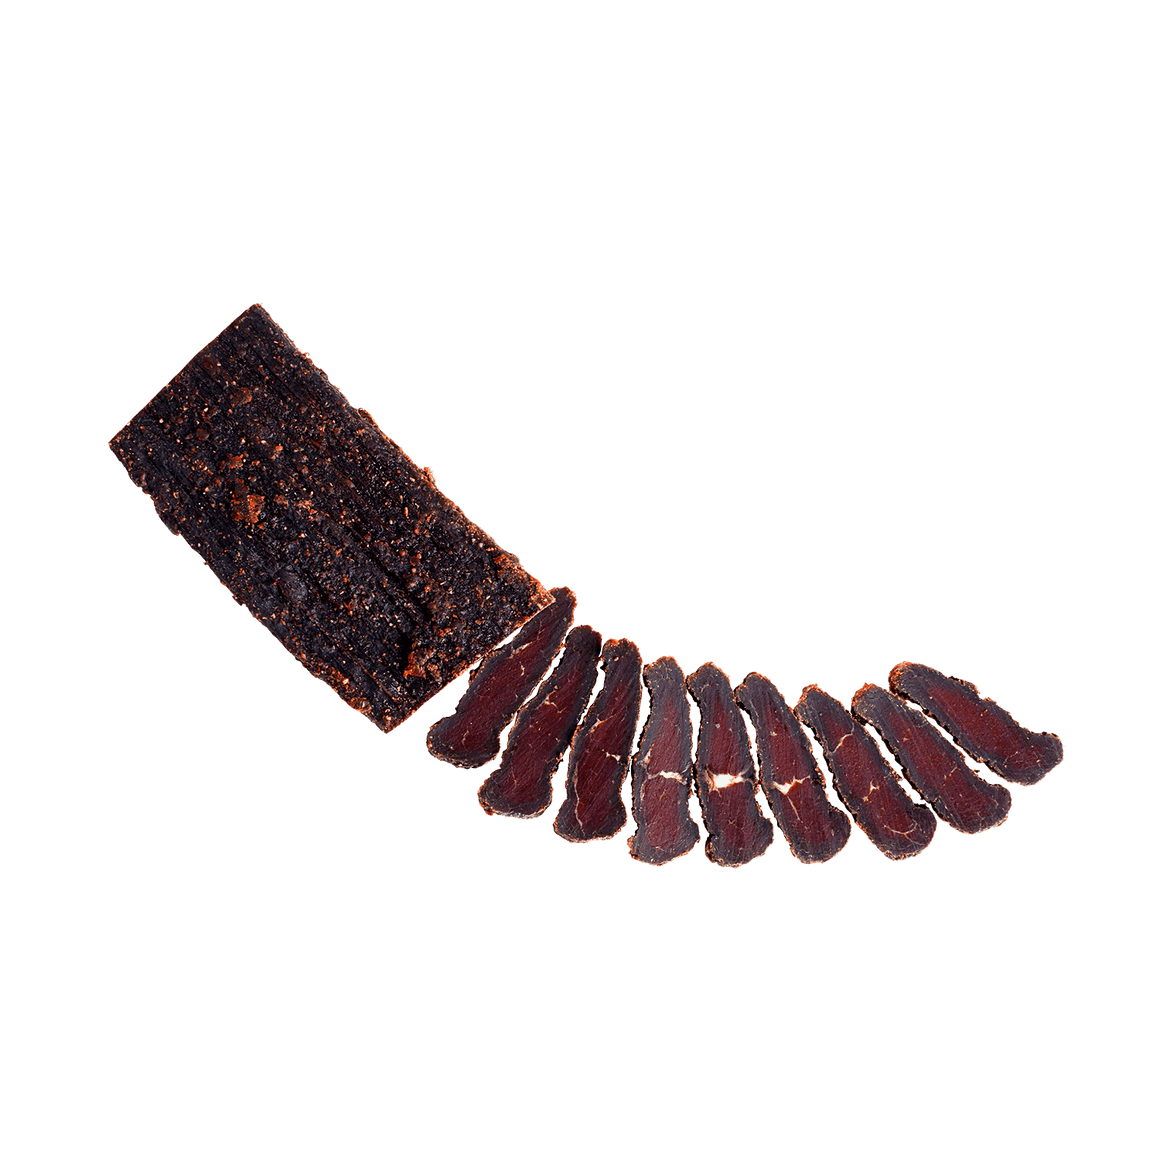 Original Whole Biltong Slab